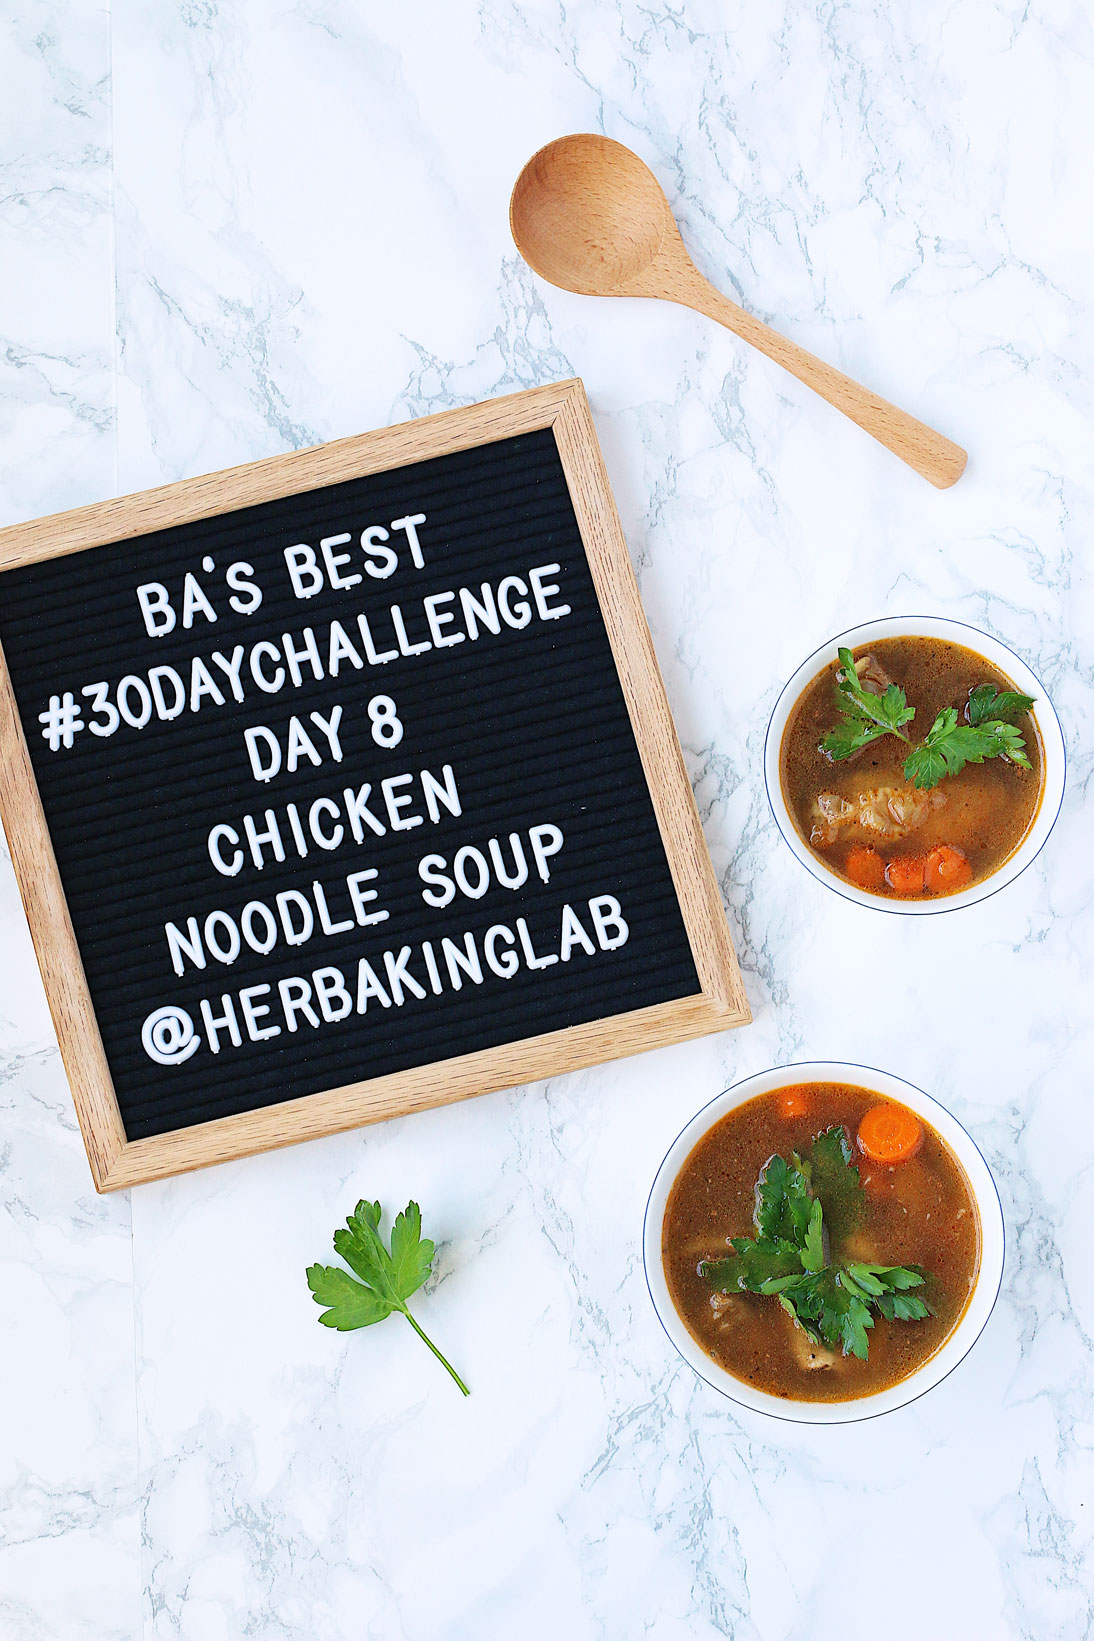 #ba30daychallenge-bon-appetit-best-recipes-day-8-chicken-noodle-soup